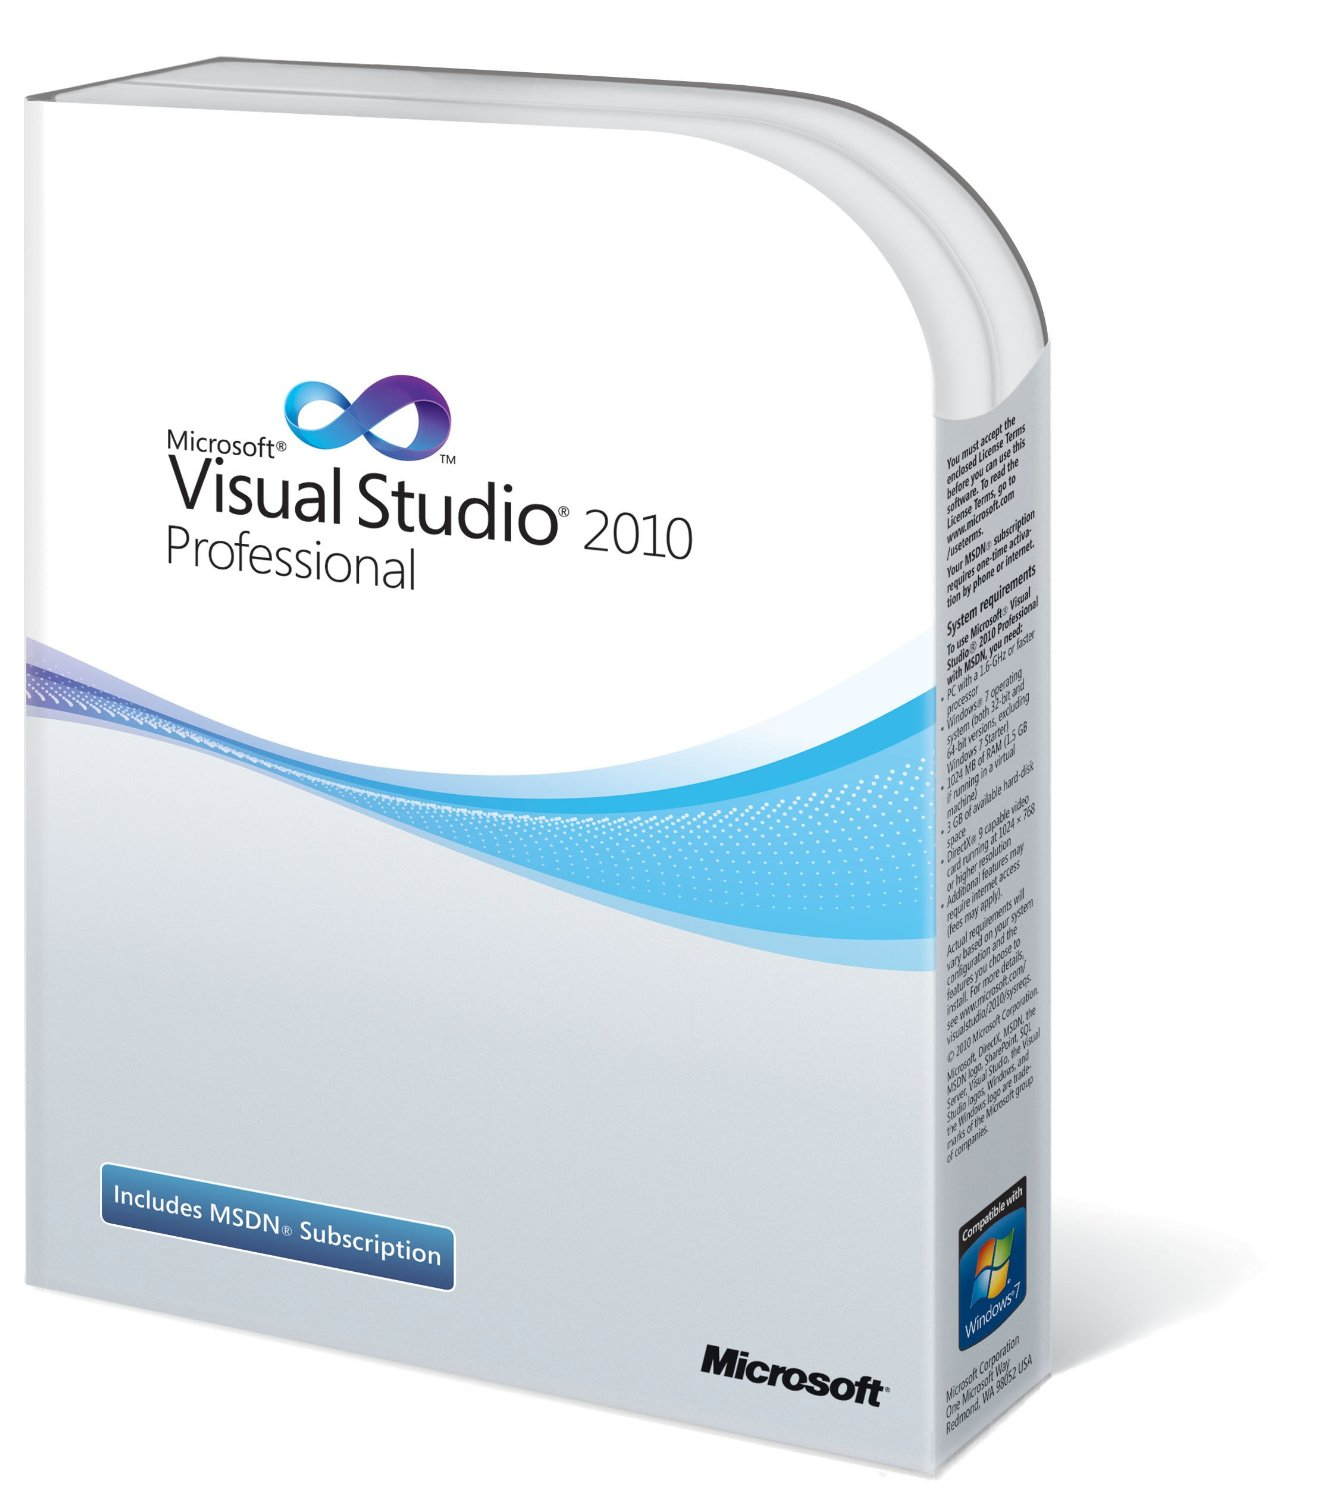 visual studio 2008 free download for windows 7 64 bit with crack